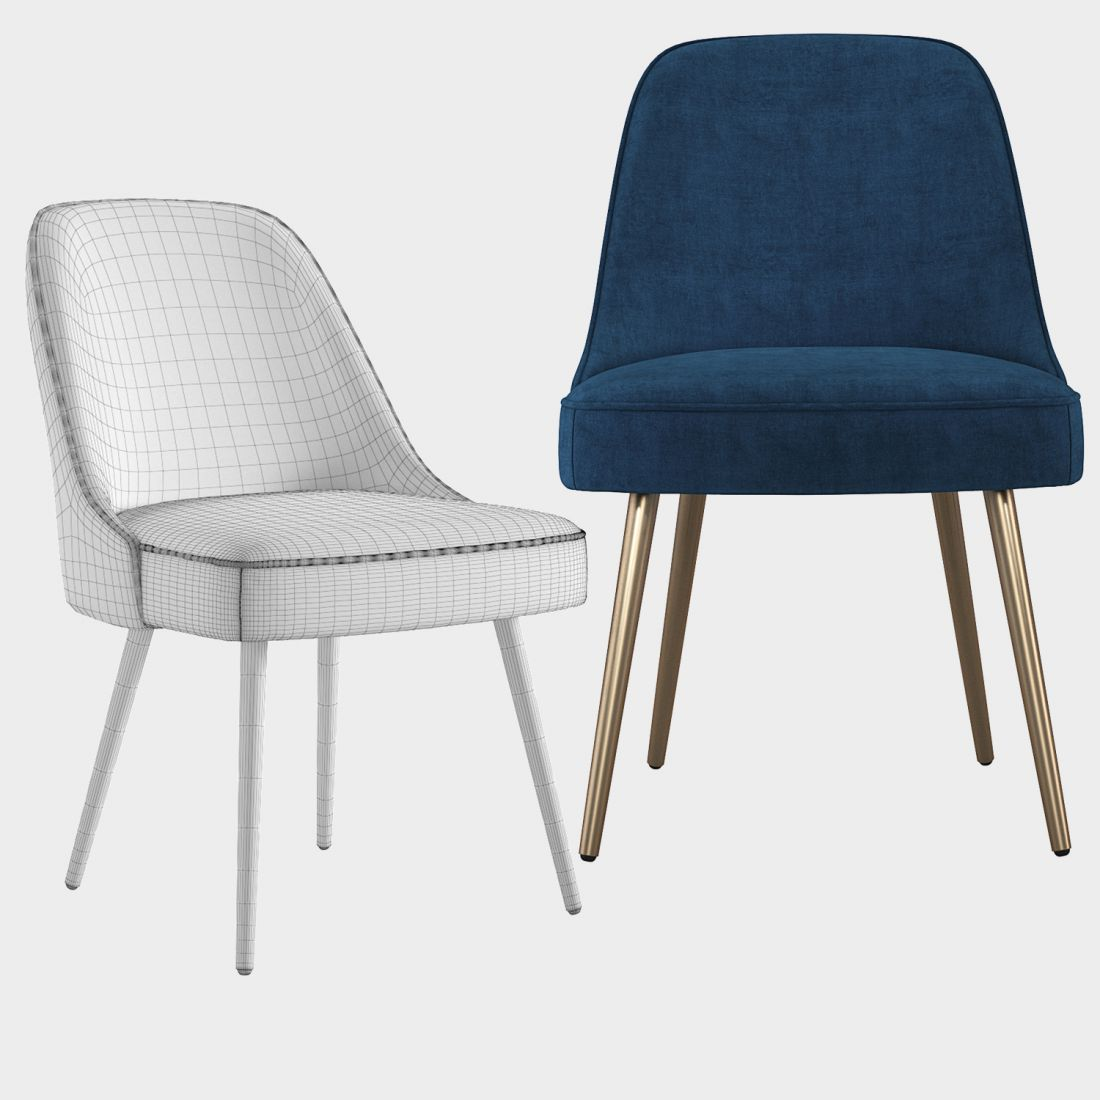 West Elm Mid Century Upholstered Dining Chair 3d Model For Vray Corona